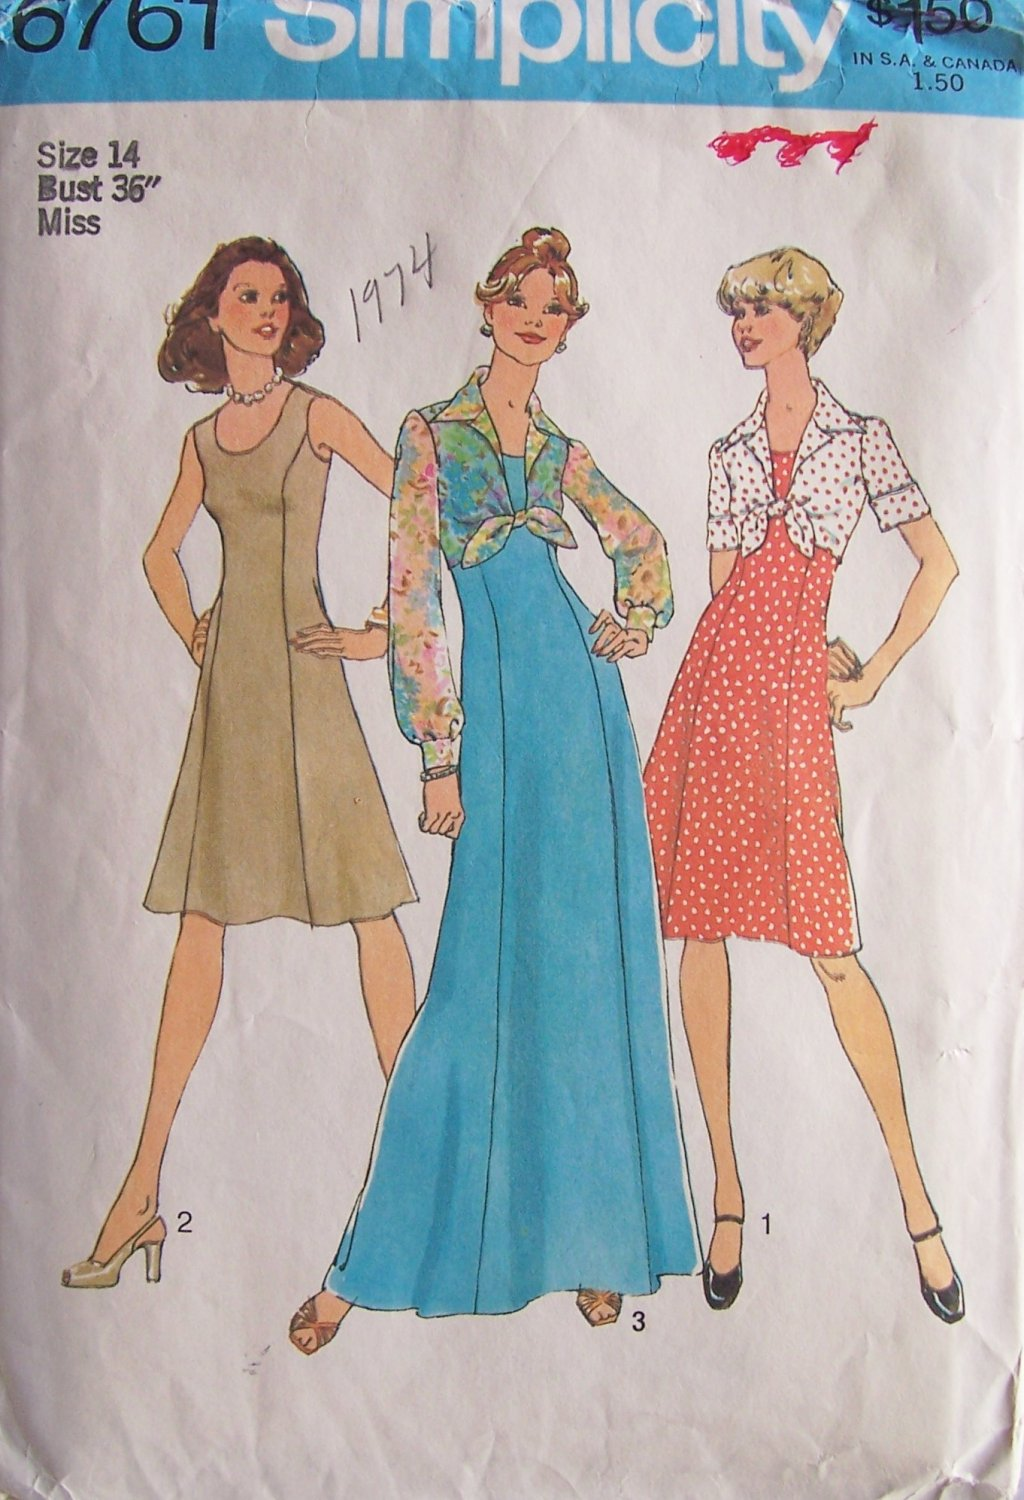 Vintage 70s Simplicity 6761 Princess Seamed Maxi Dress and Jacket Pattern Uncut Size 14 Bust 36